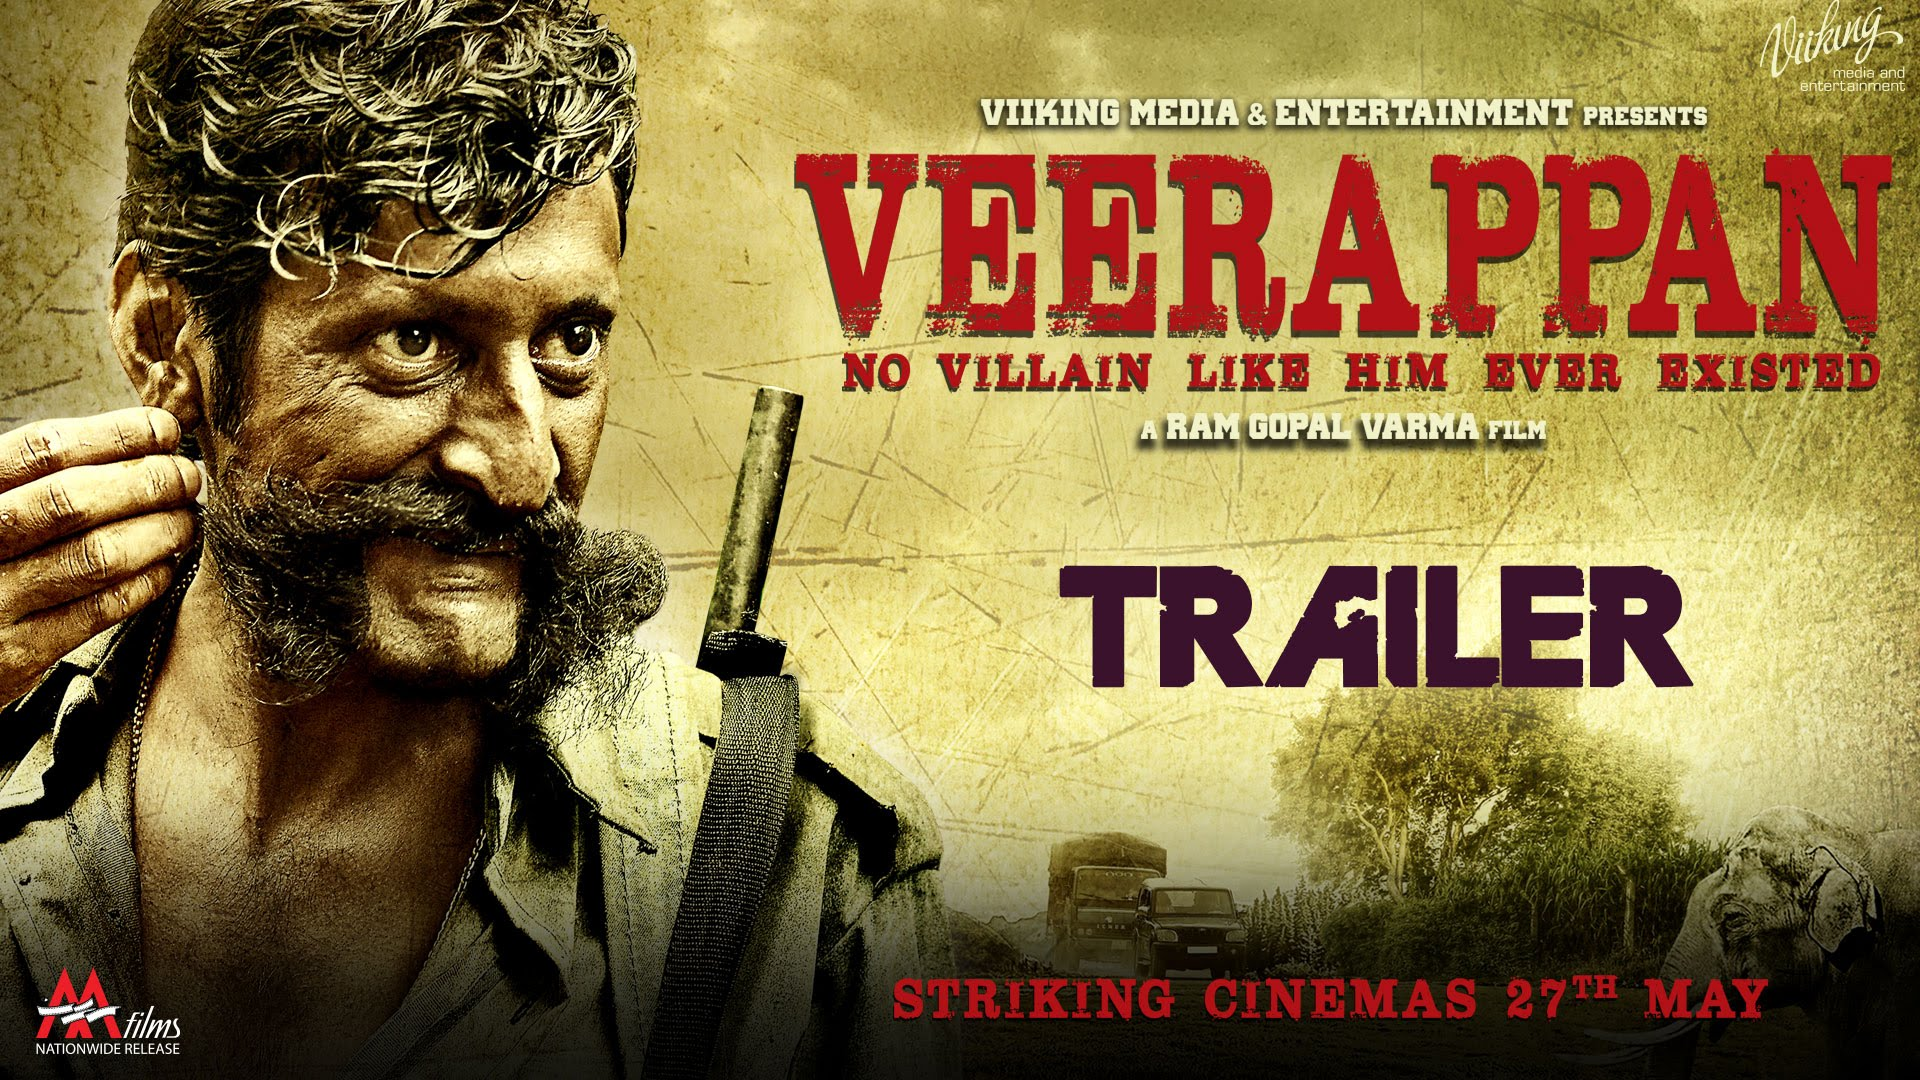 Veerappan Trailer Review: How Asia's biggest manhunt unfolded